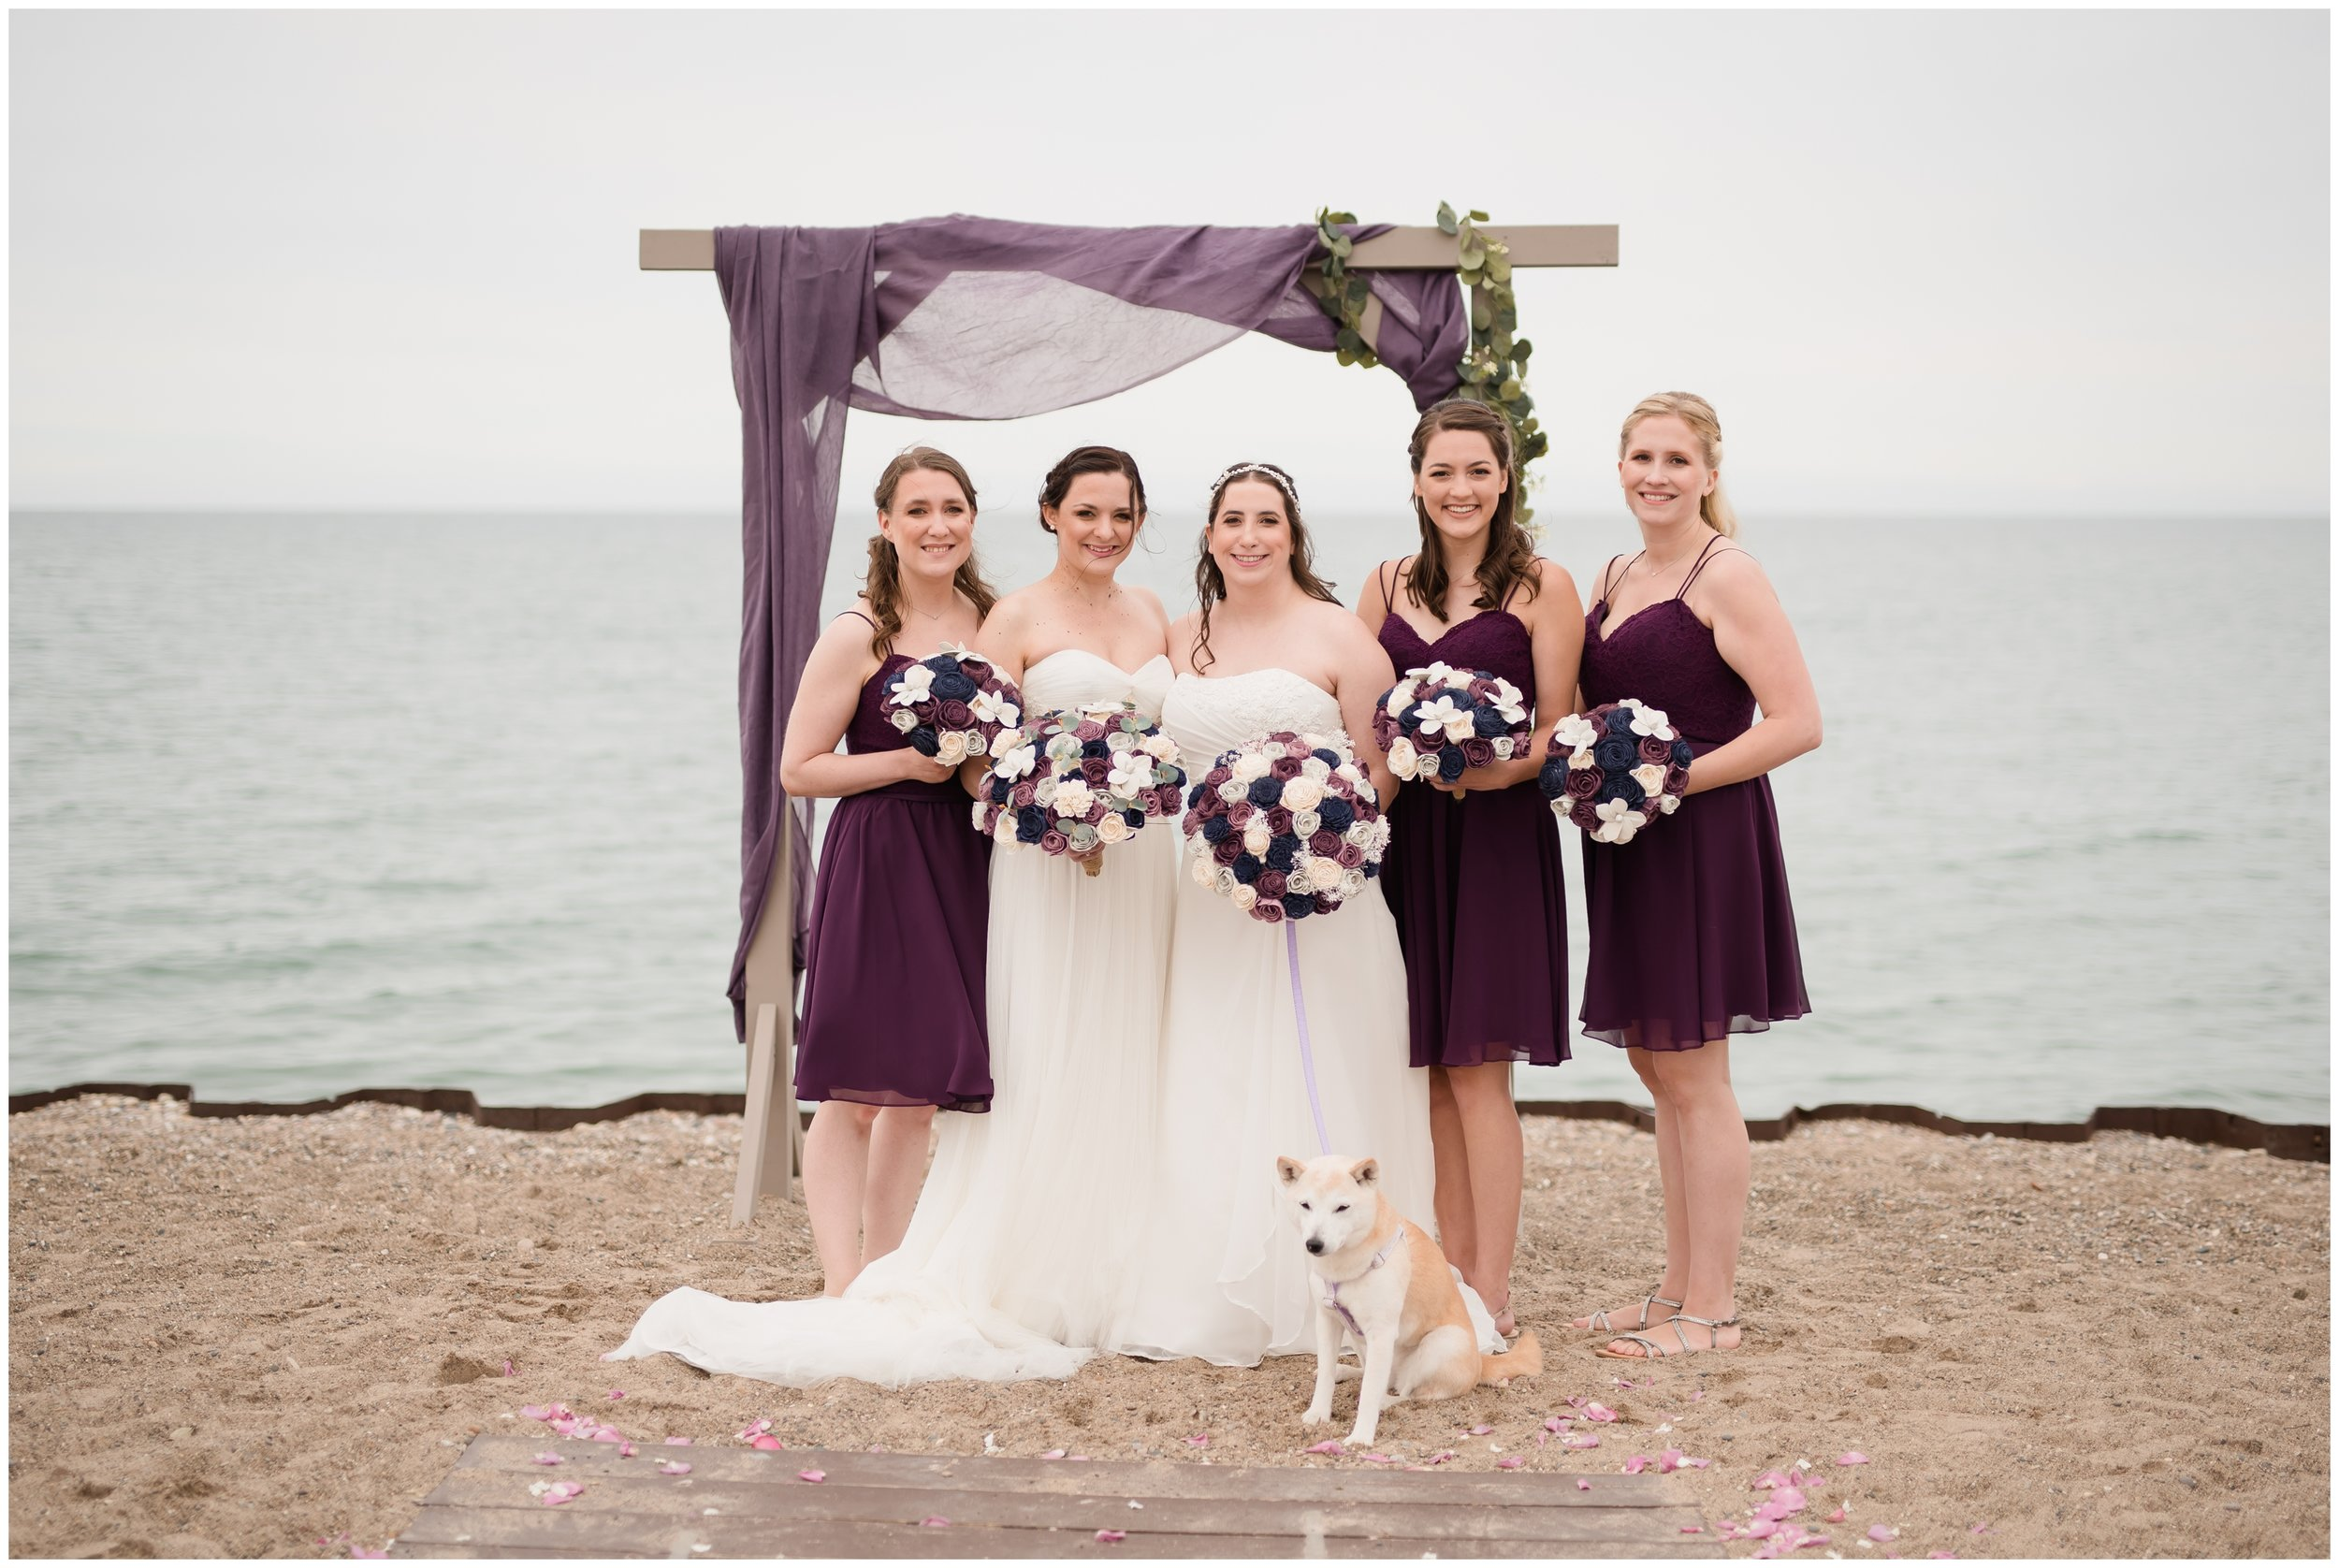 Two Brides and their wedding party